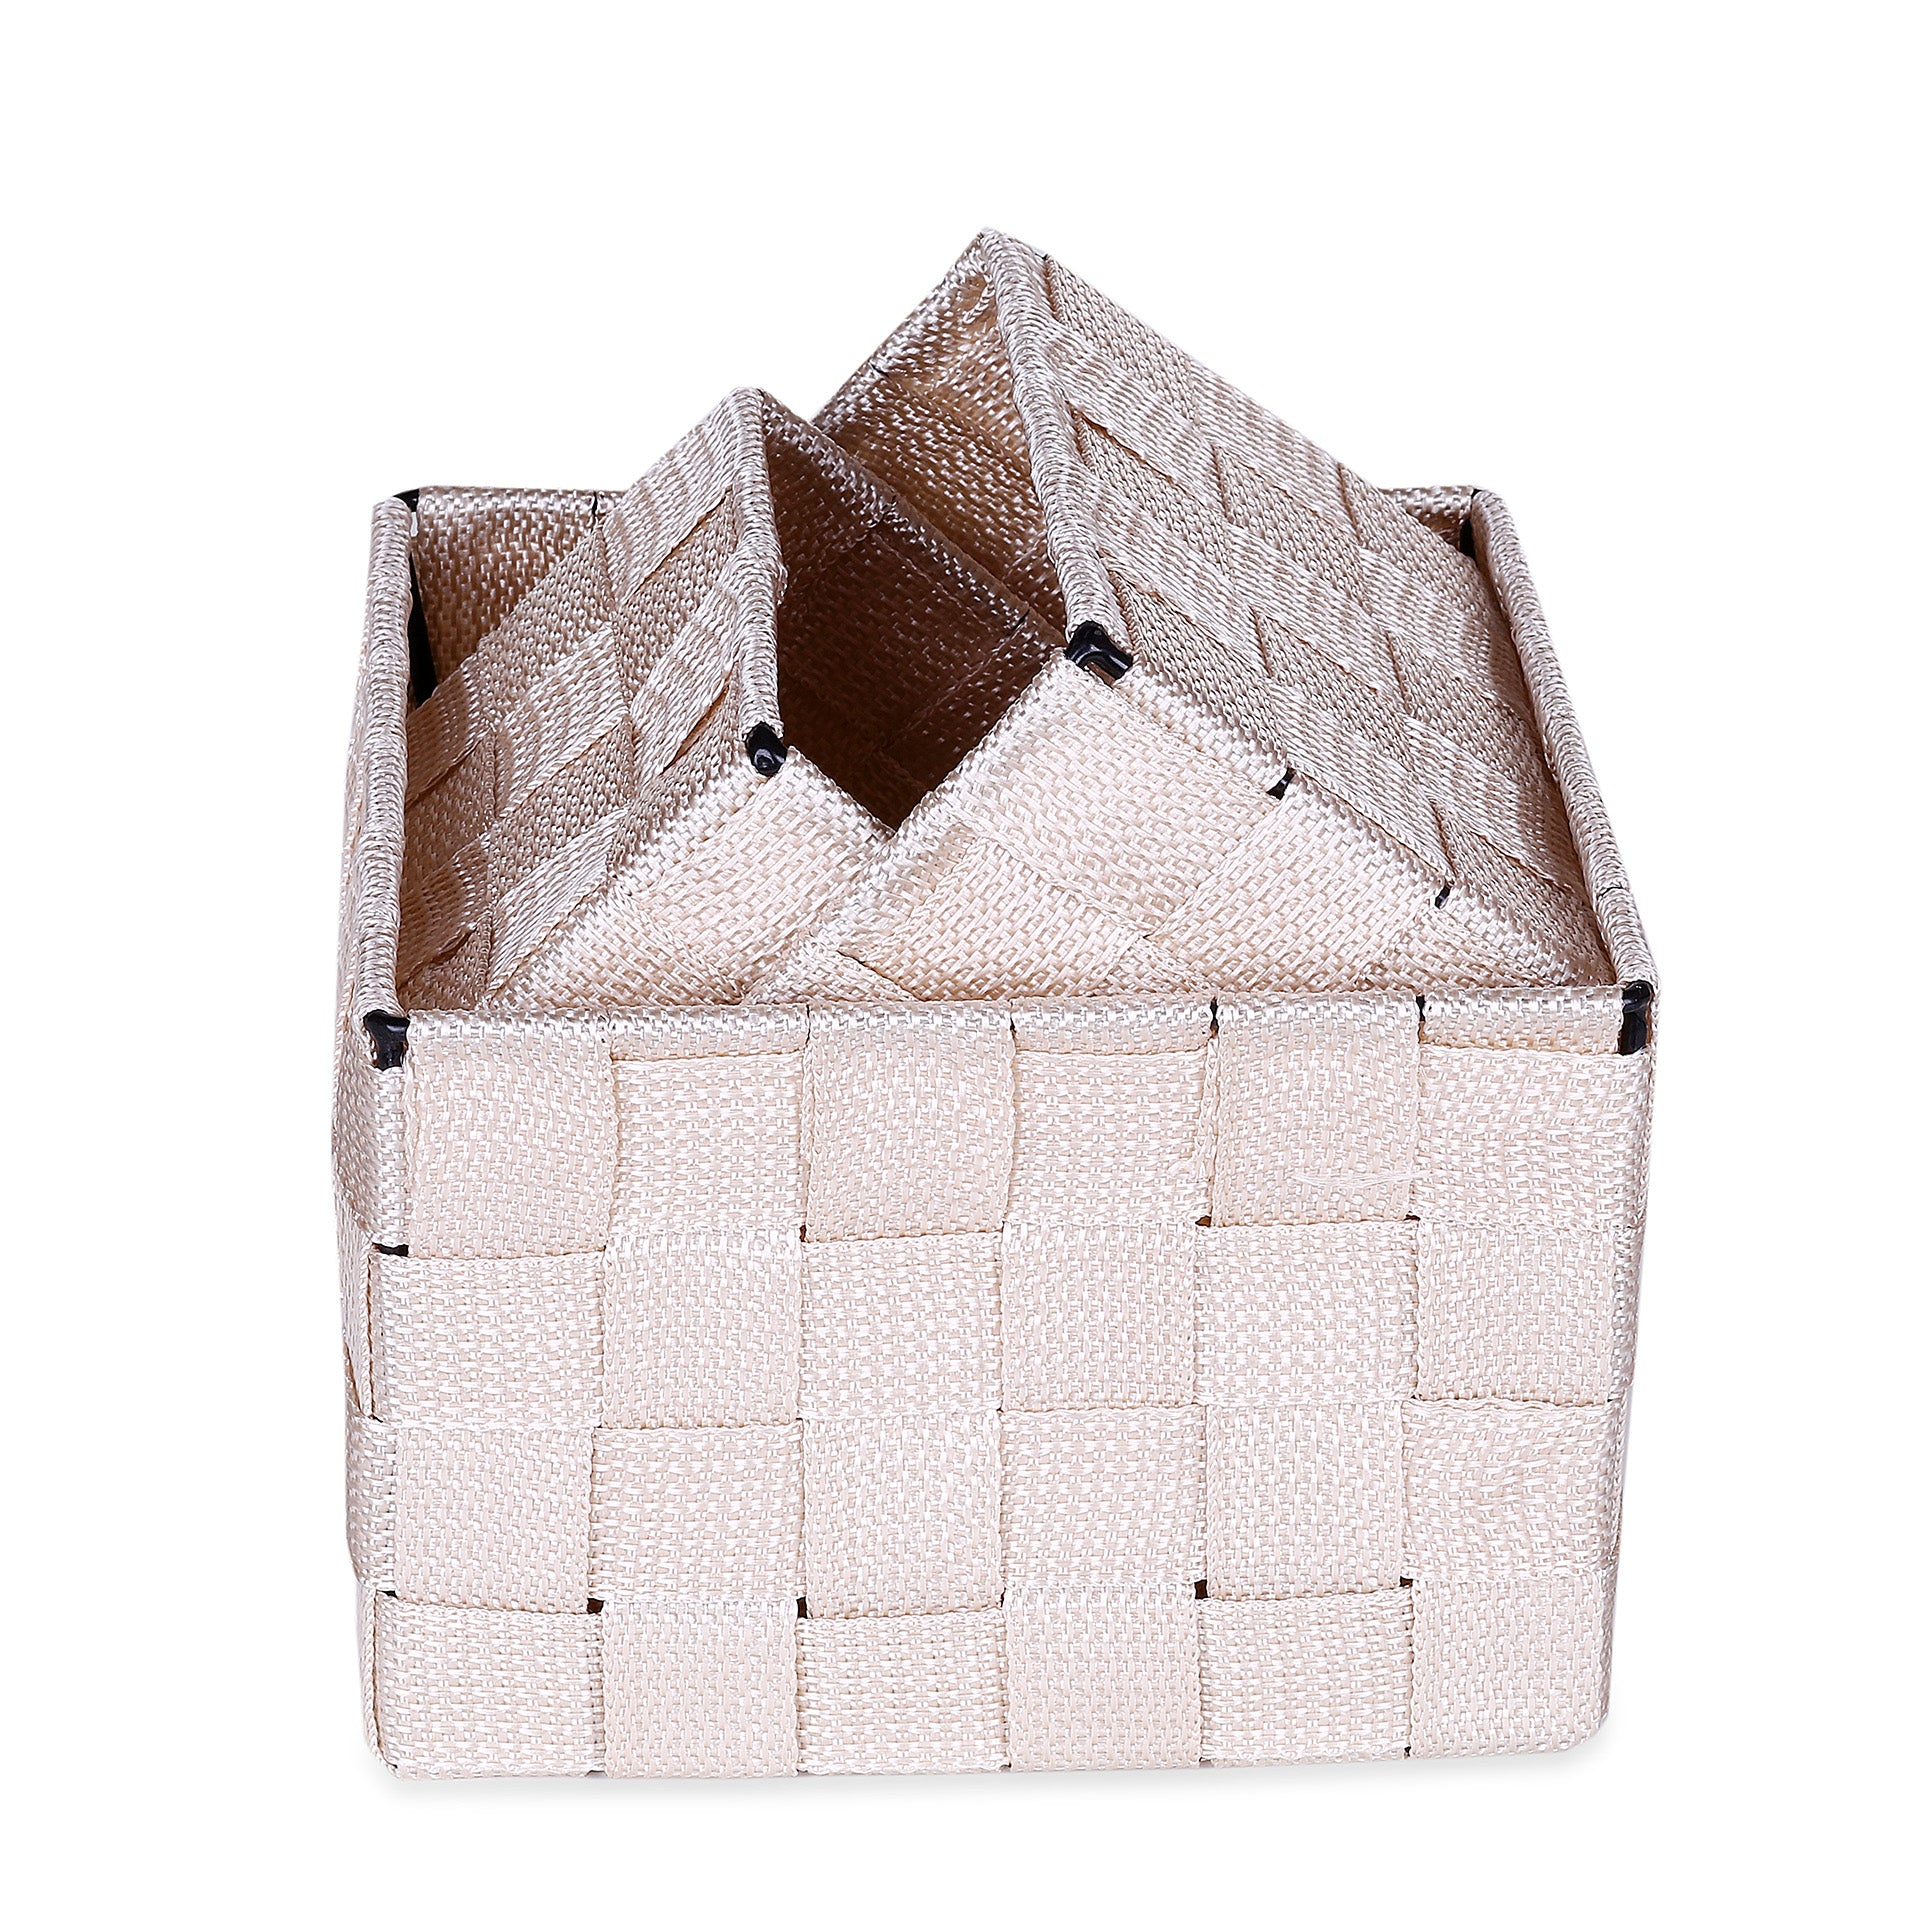 Beige Square Design Basket (Set of 3)